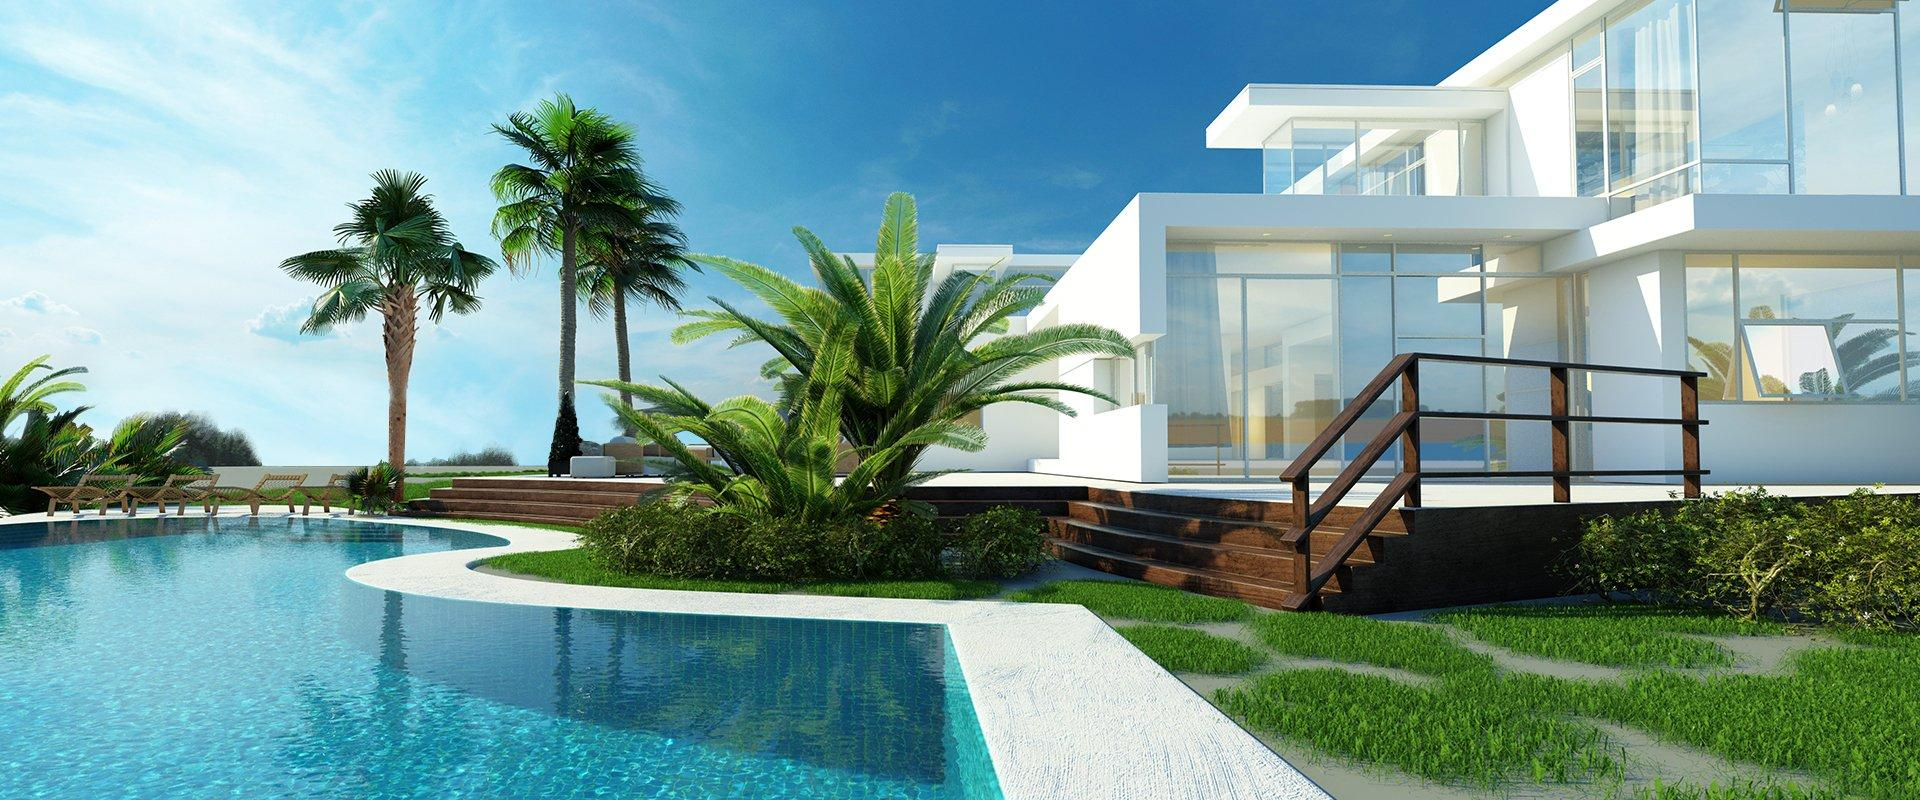 street view of a home in providenciales